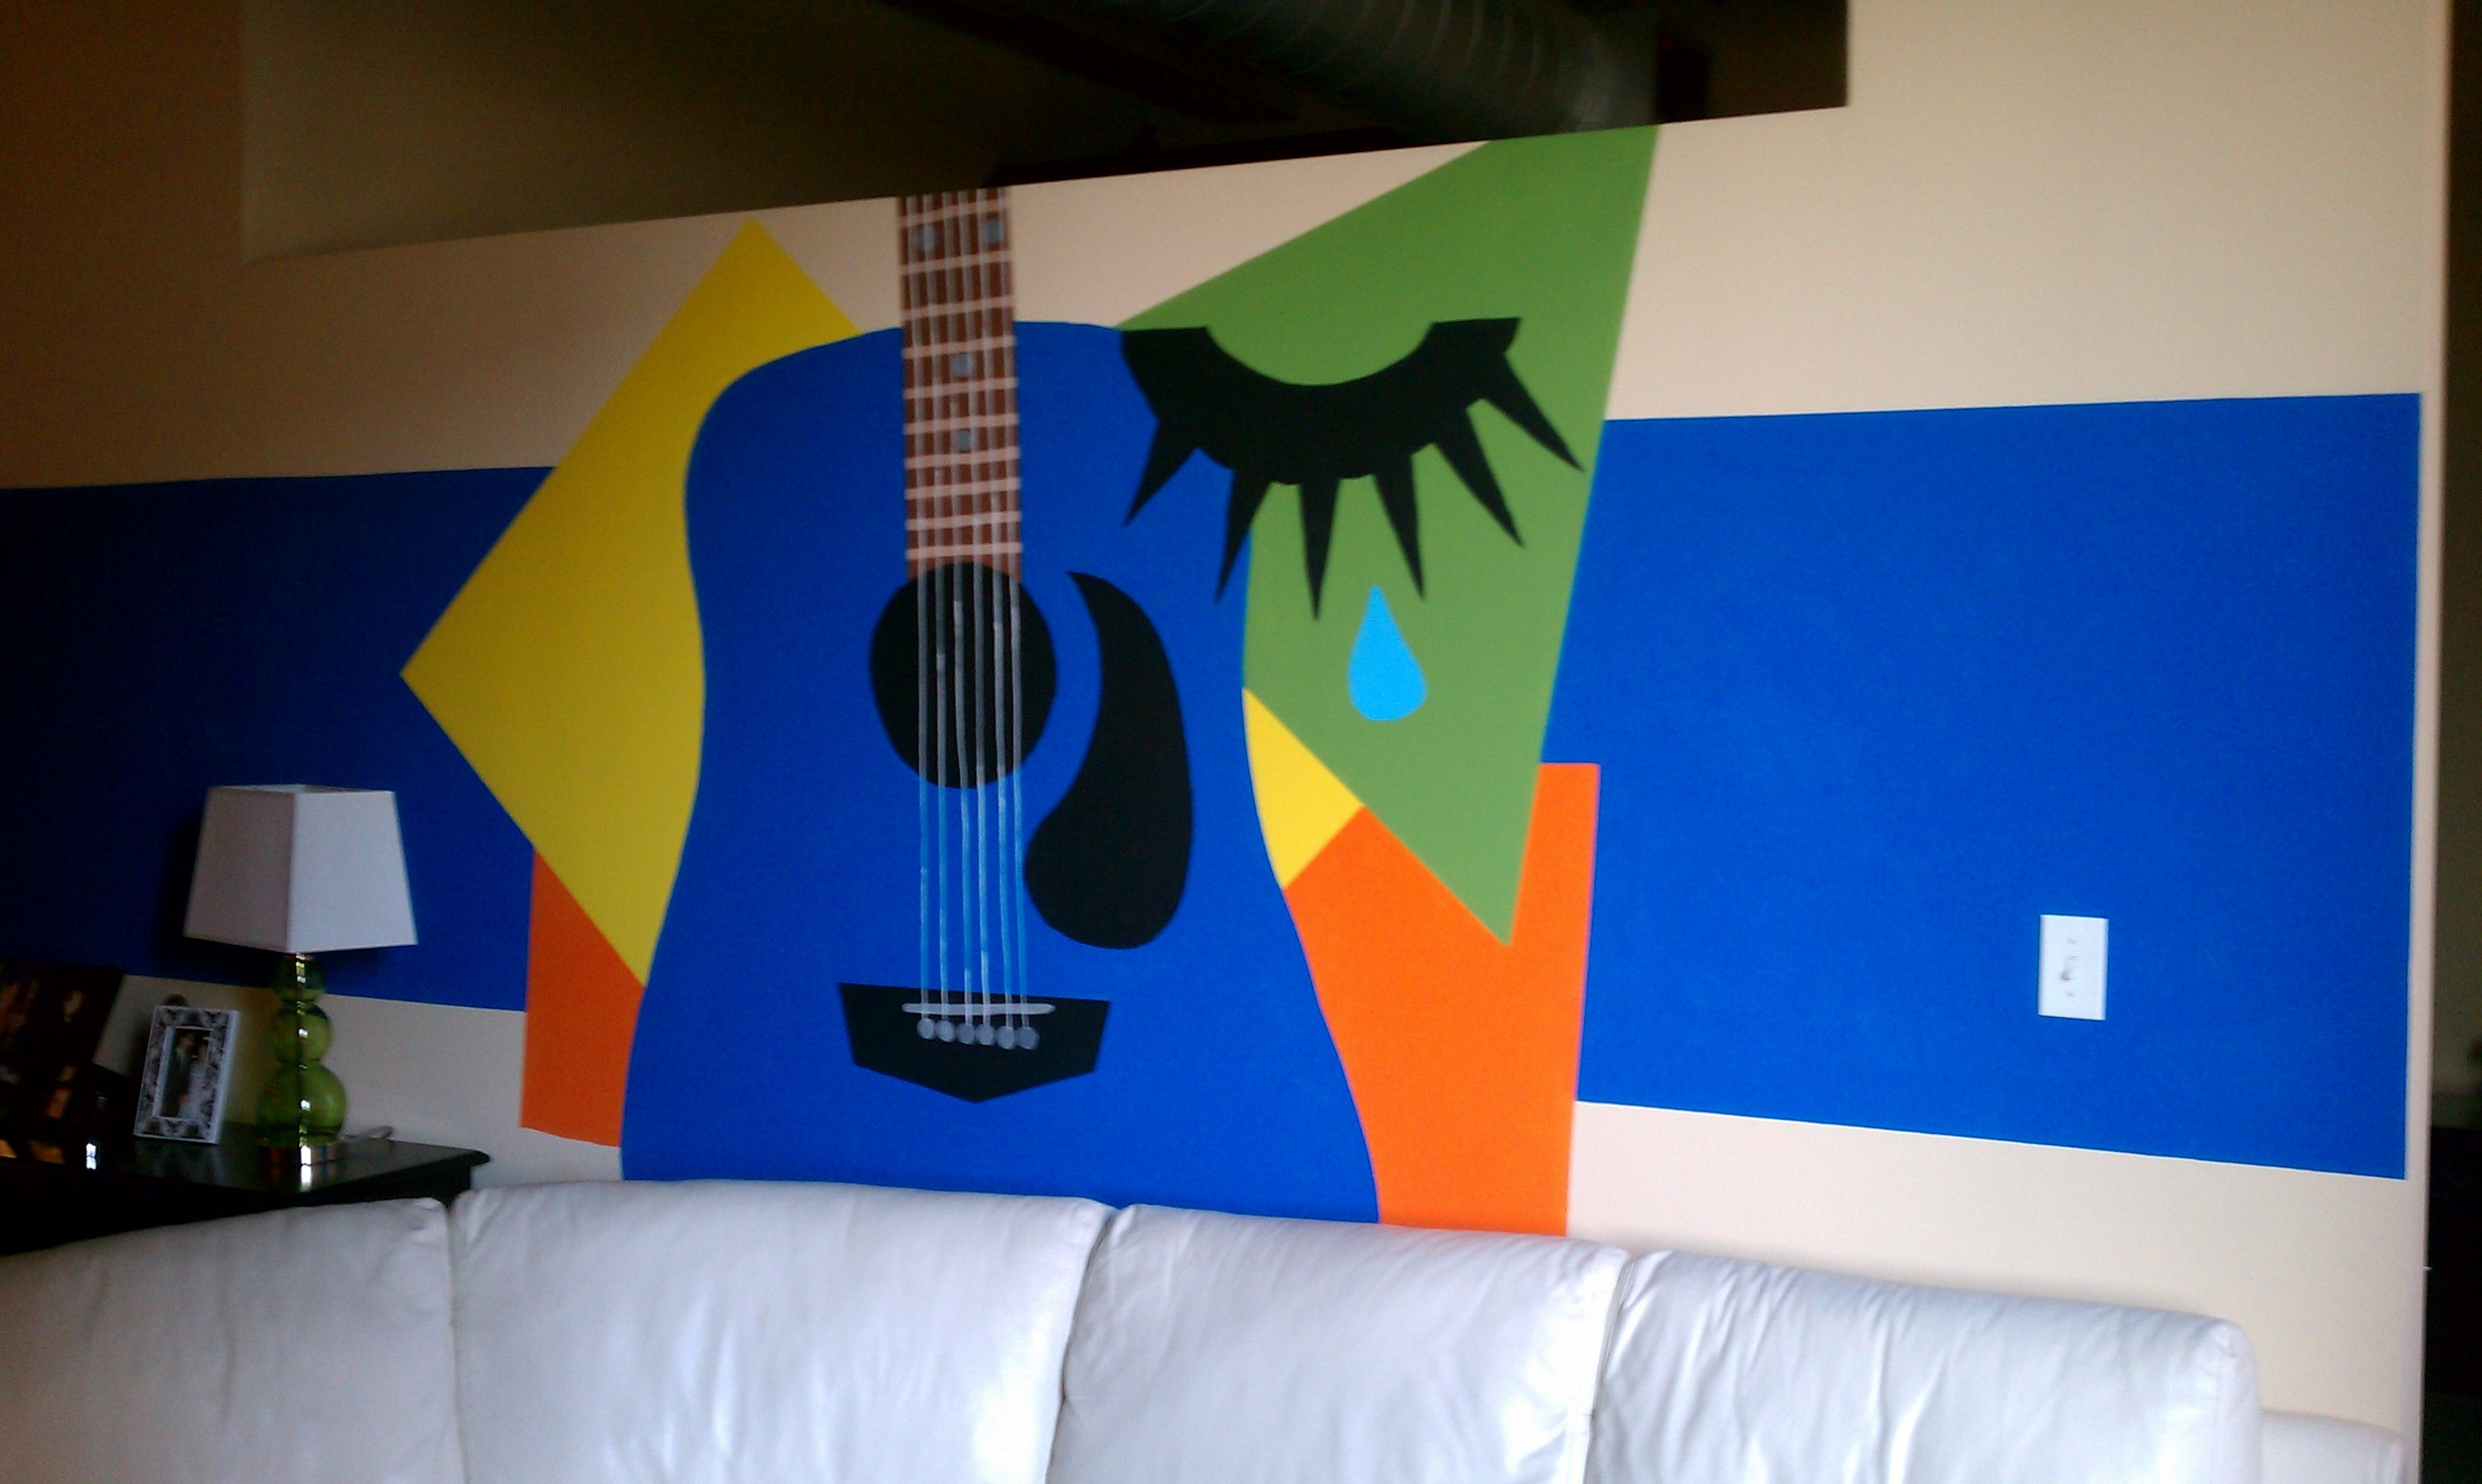 Nice Wall Painting Compliments Of Radagun Great Idea For A Guitar